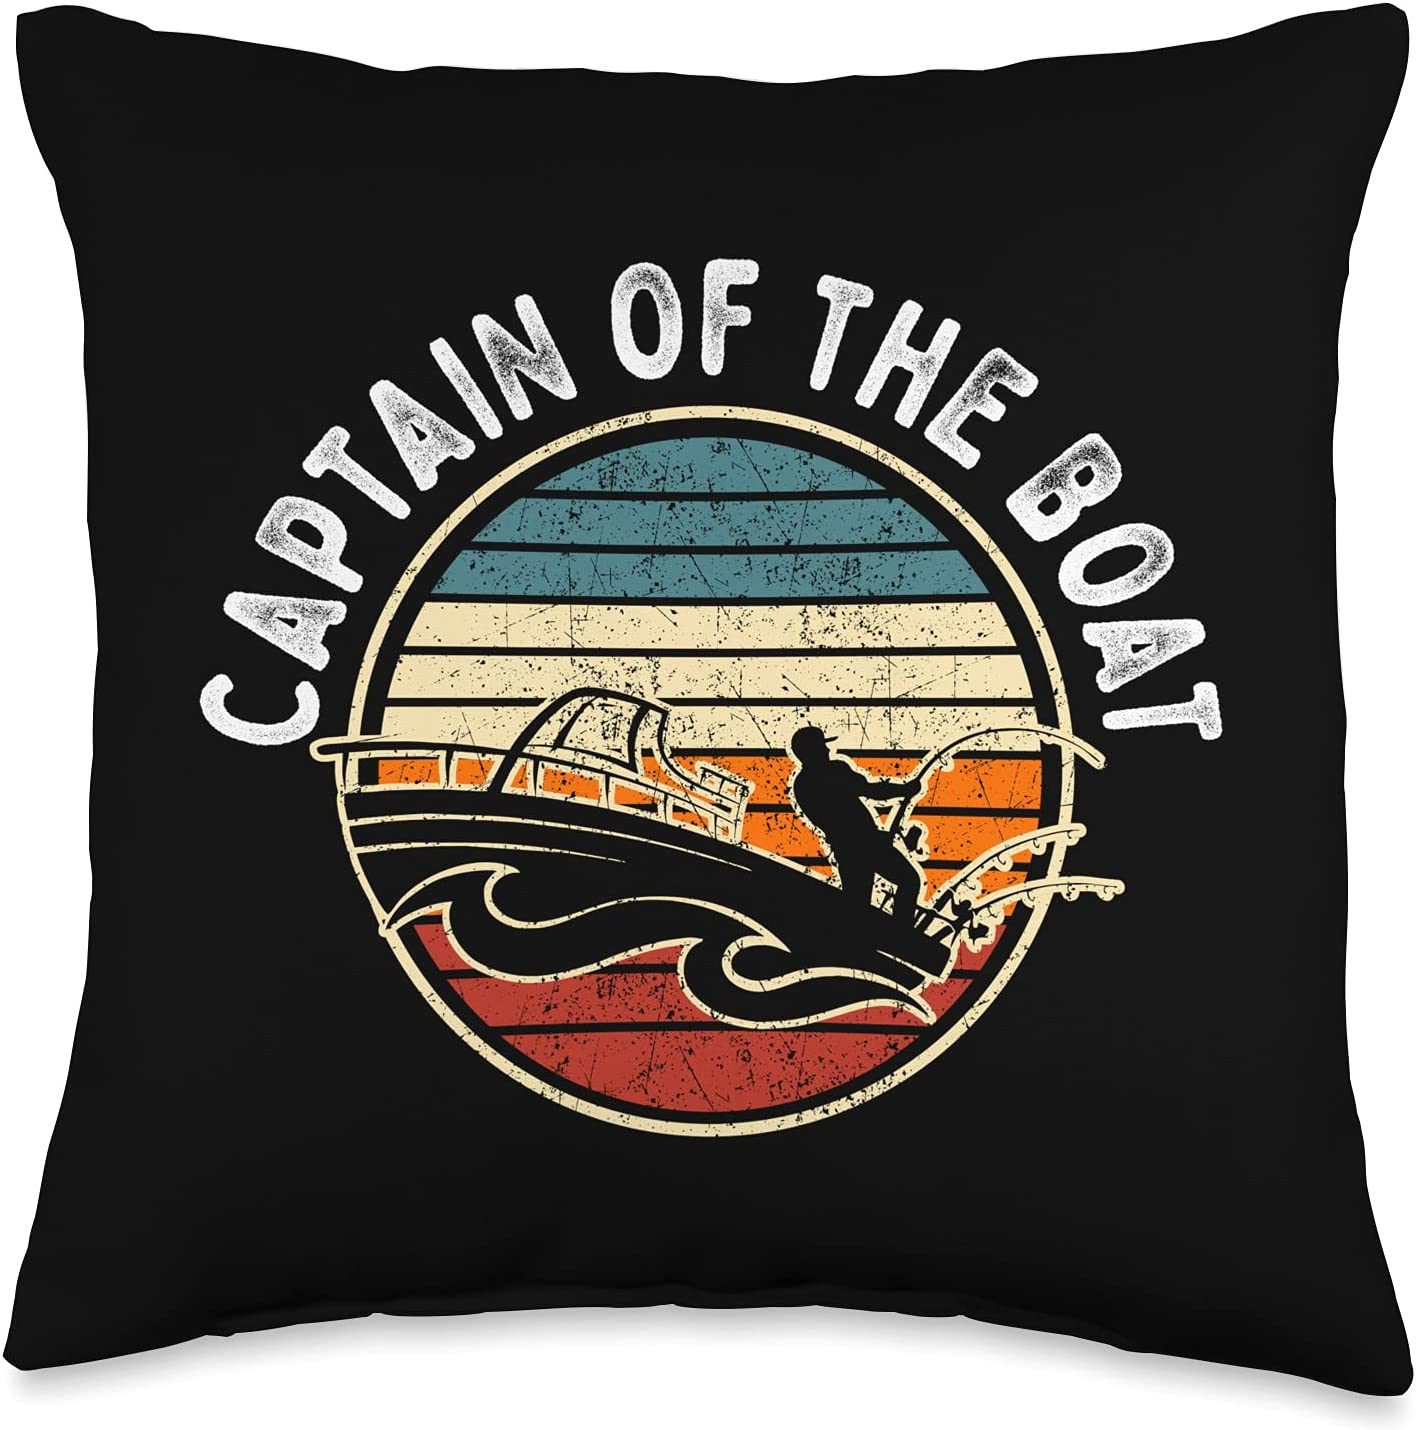 Boating Sailing Apparel Co Captain of The Boat Max 77% OFF Year-end annual account S Vintage Retro